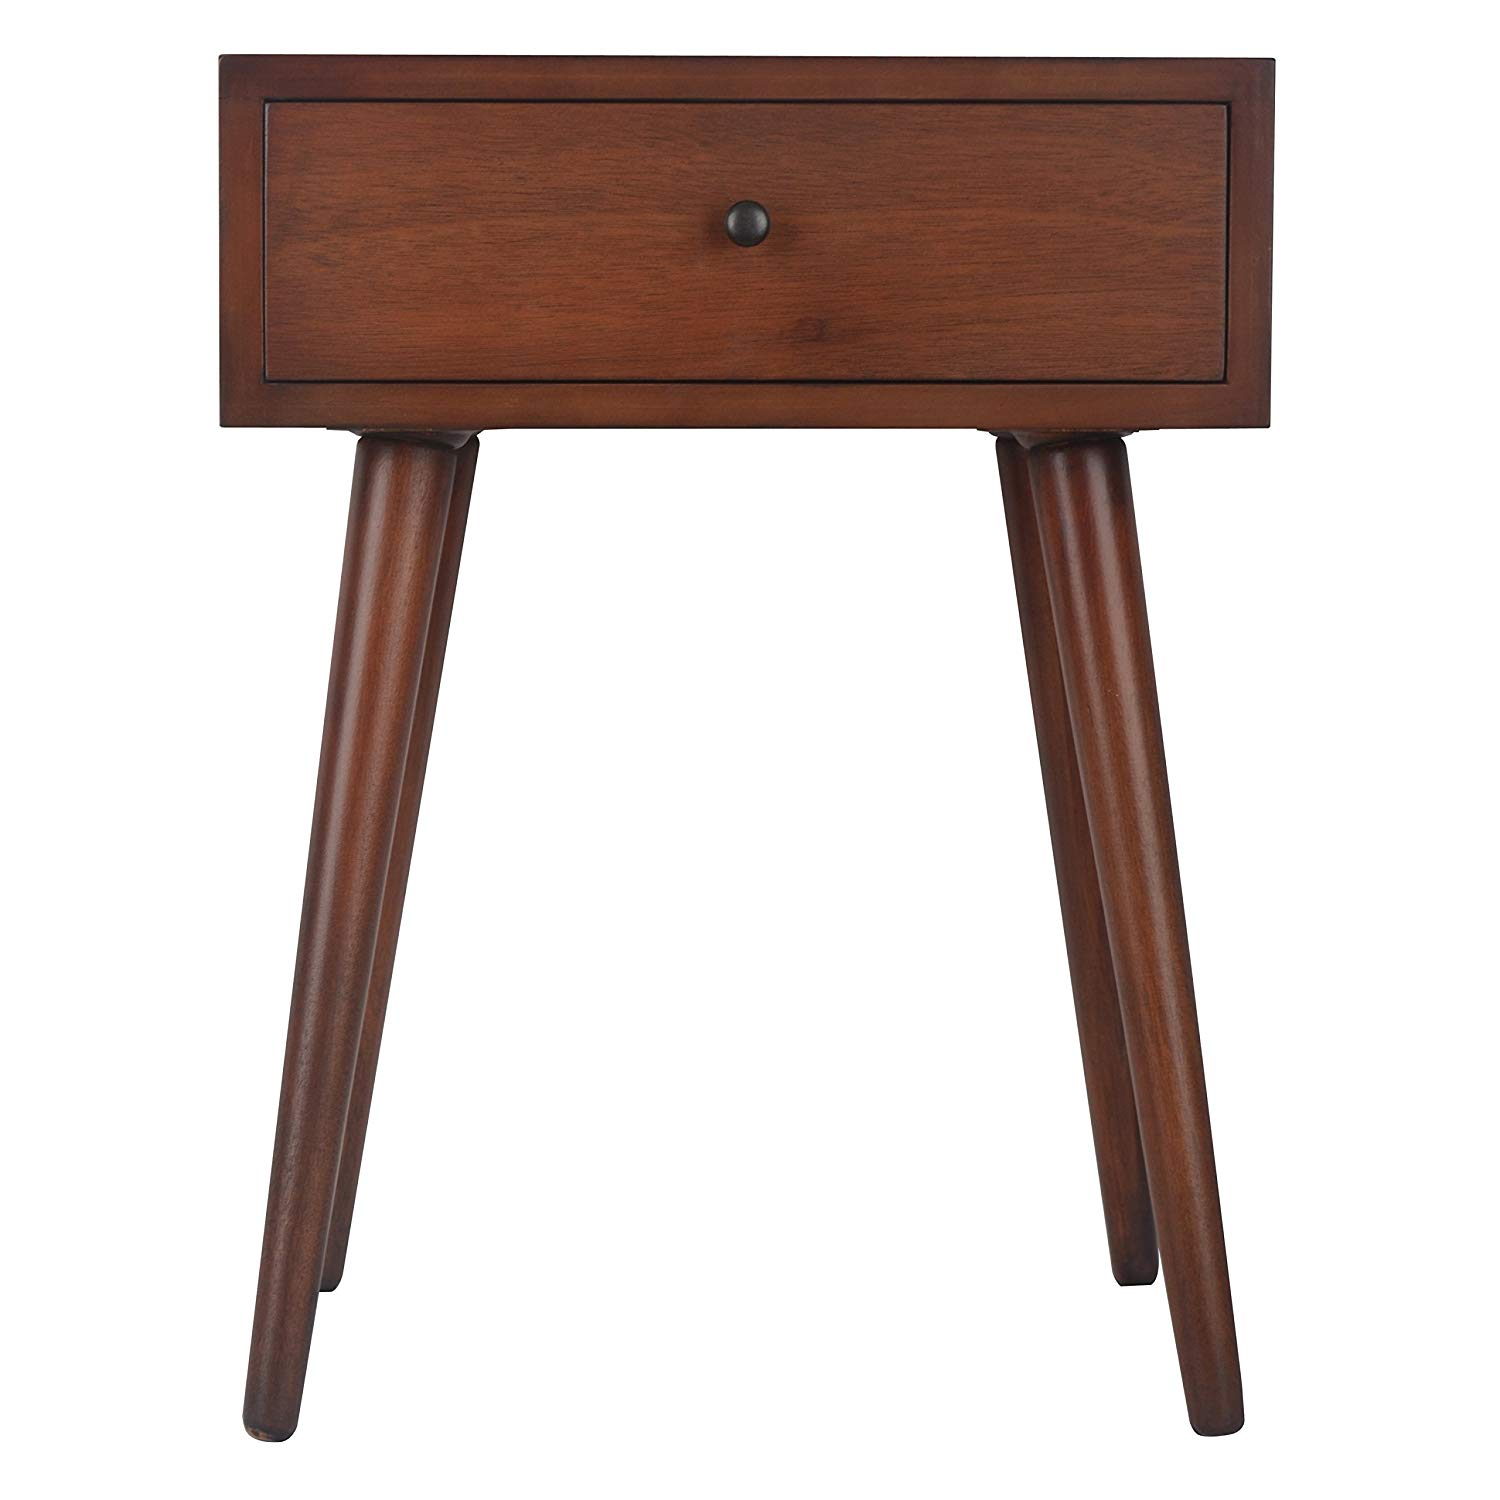 end table mid century single drawer wood side accent wide high deep tables office products small navy narrow sofa behind couch living room cabinet furniture pottery barn hammock